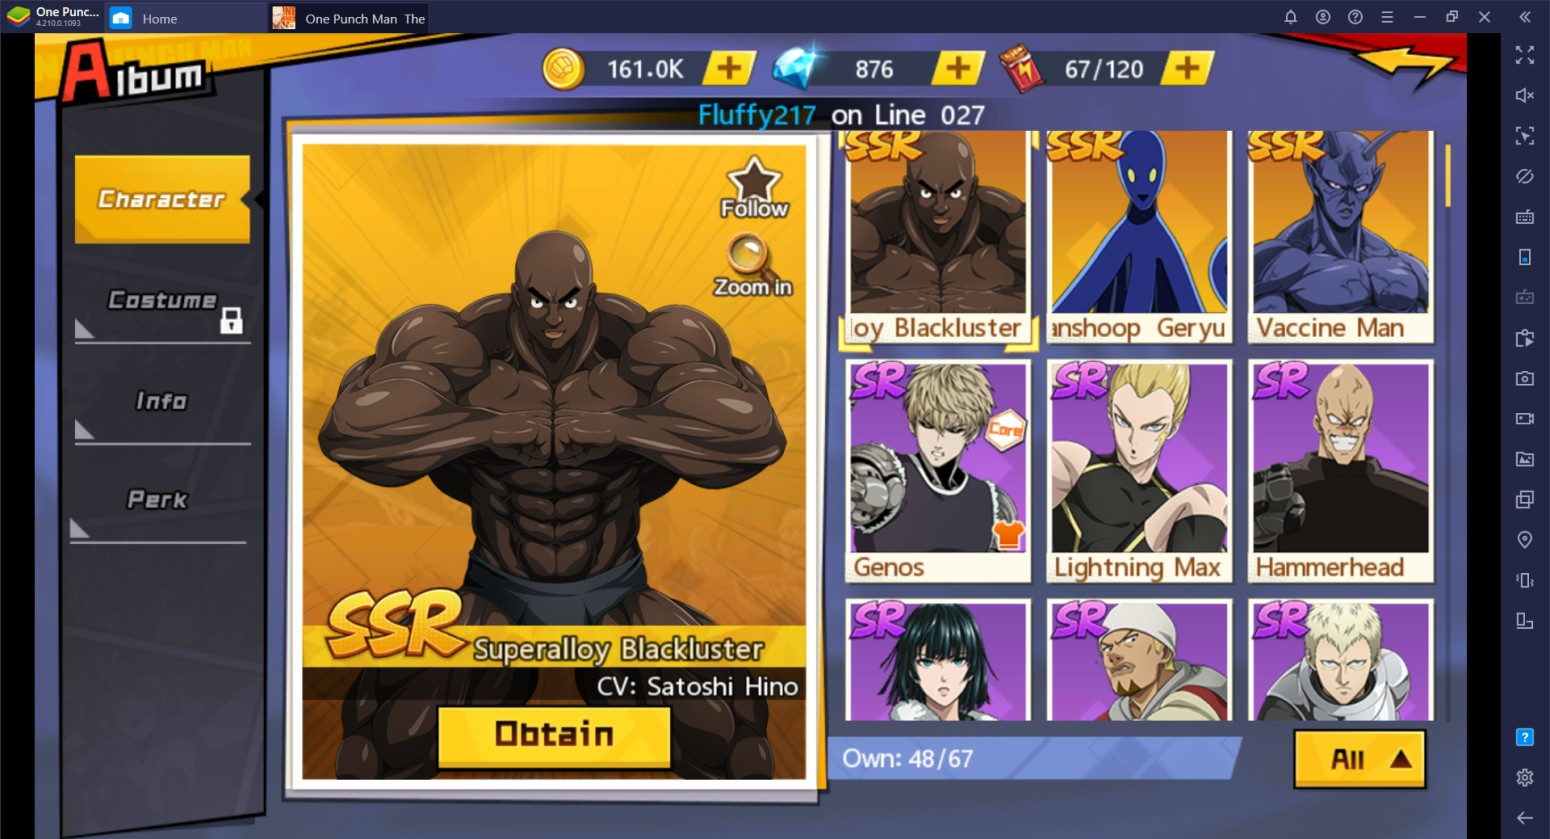 One Punch Man: The Strongest: Daftar Tier Unit – Unit Terbaik di Game